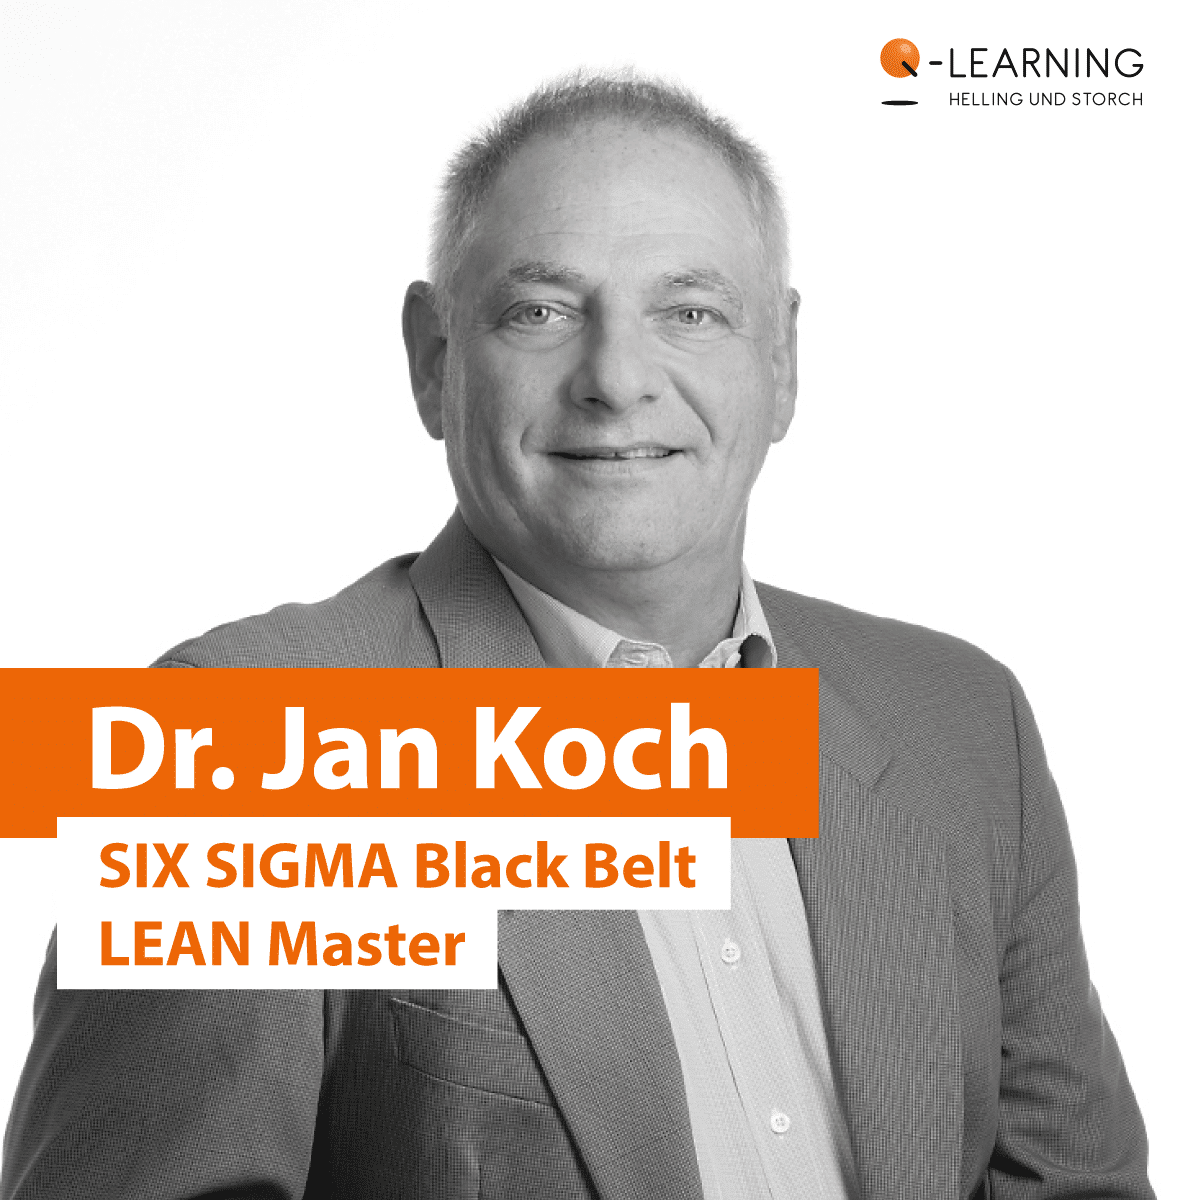 Portrait Bewertung Dr. Jan Koch | SIX SIGMA Black Belt LEAN Master